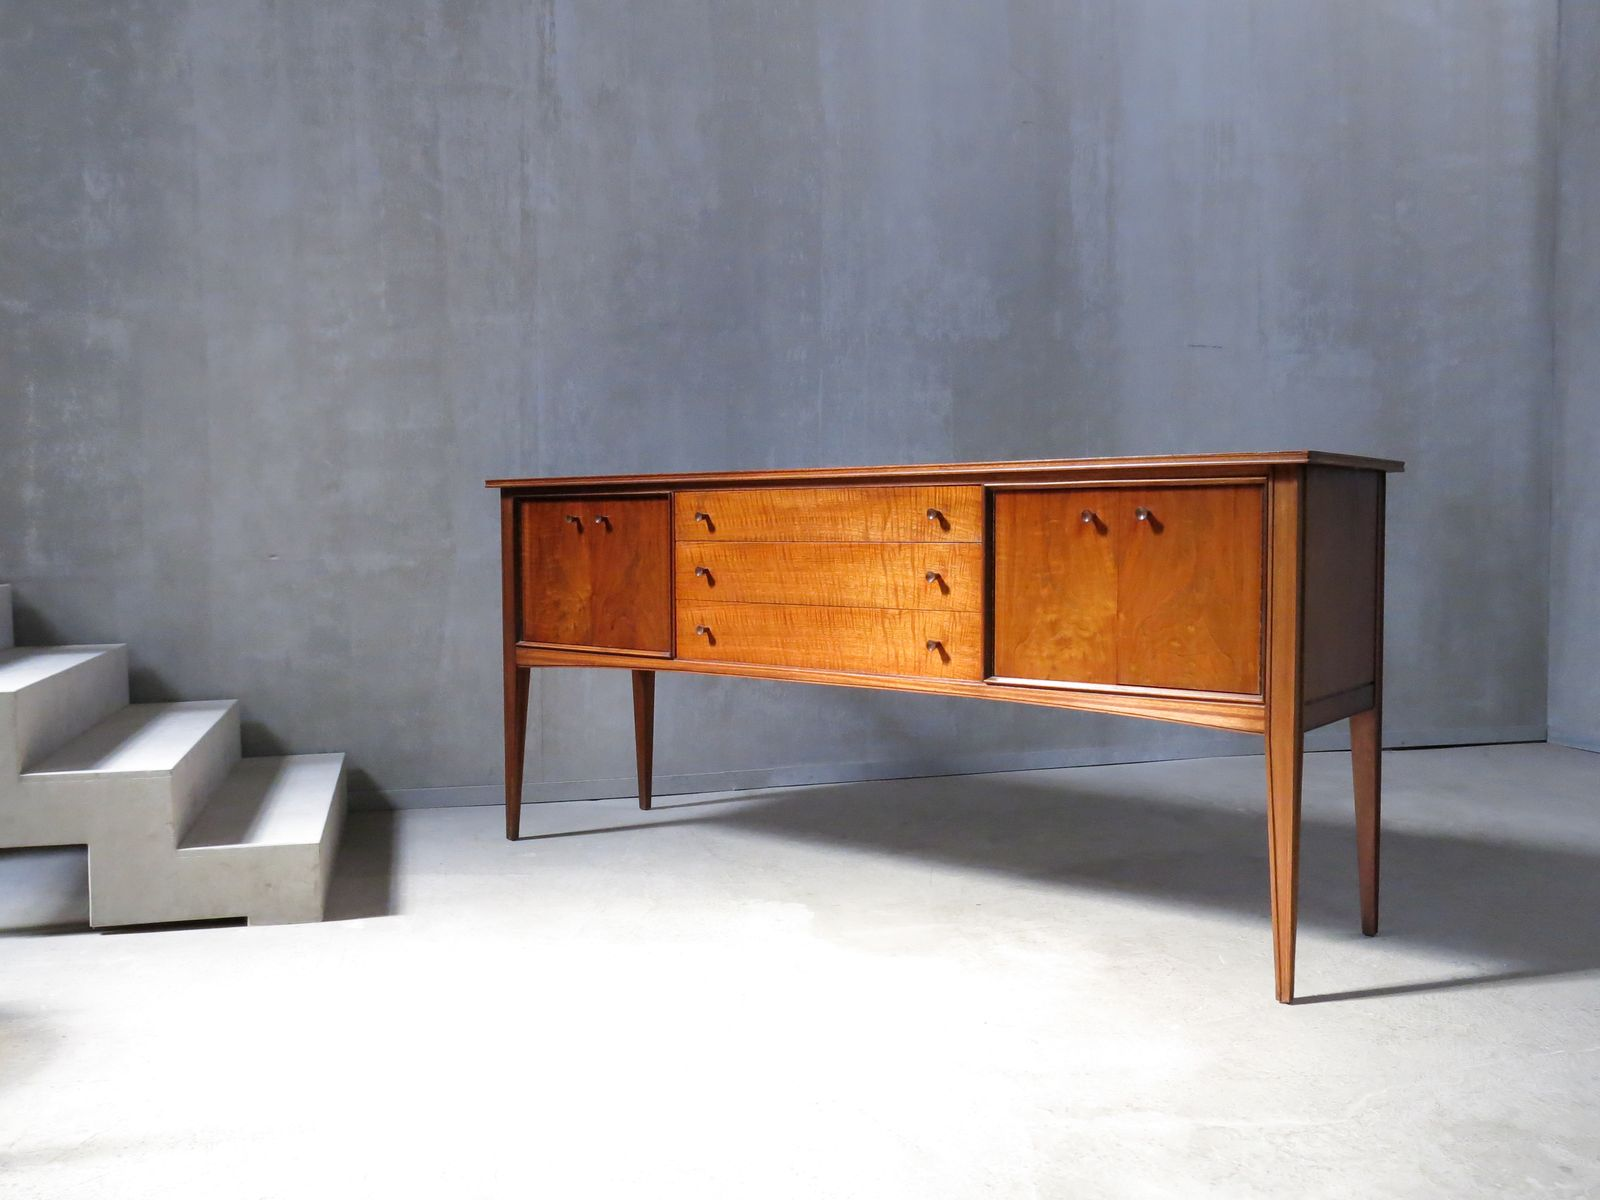 Vintage Sideboard from Younger, 1960s for sale at Pamono